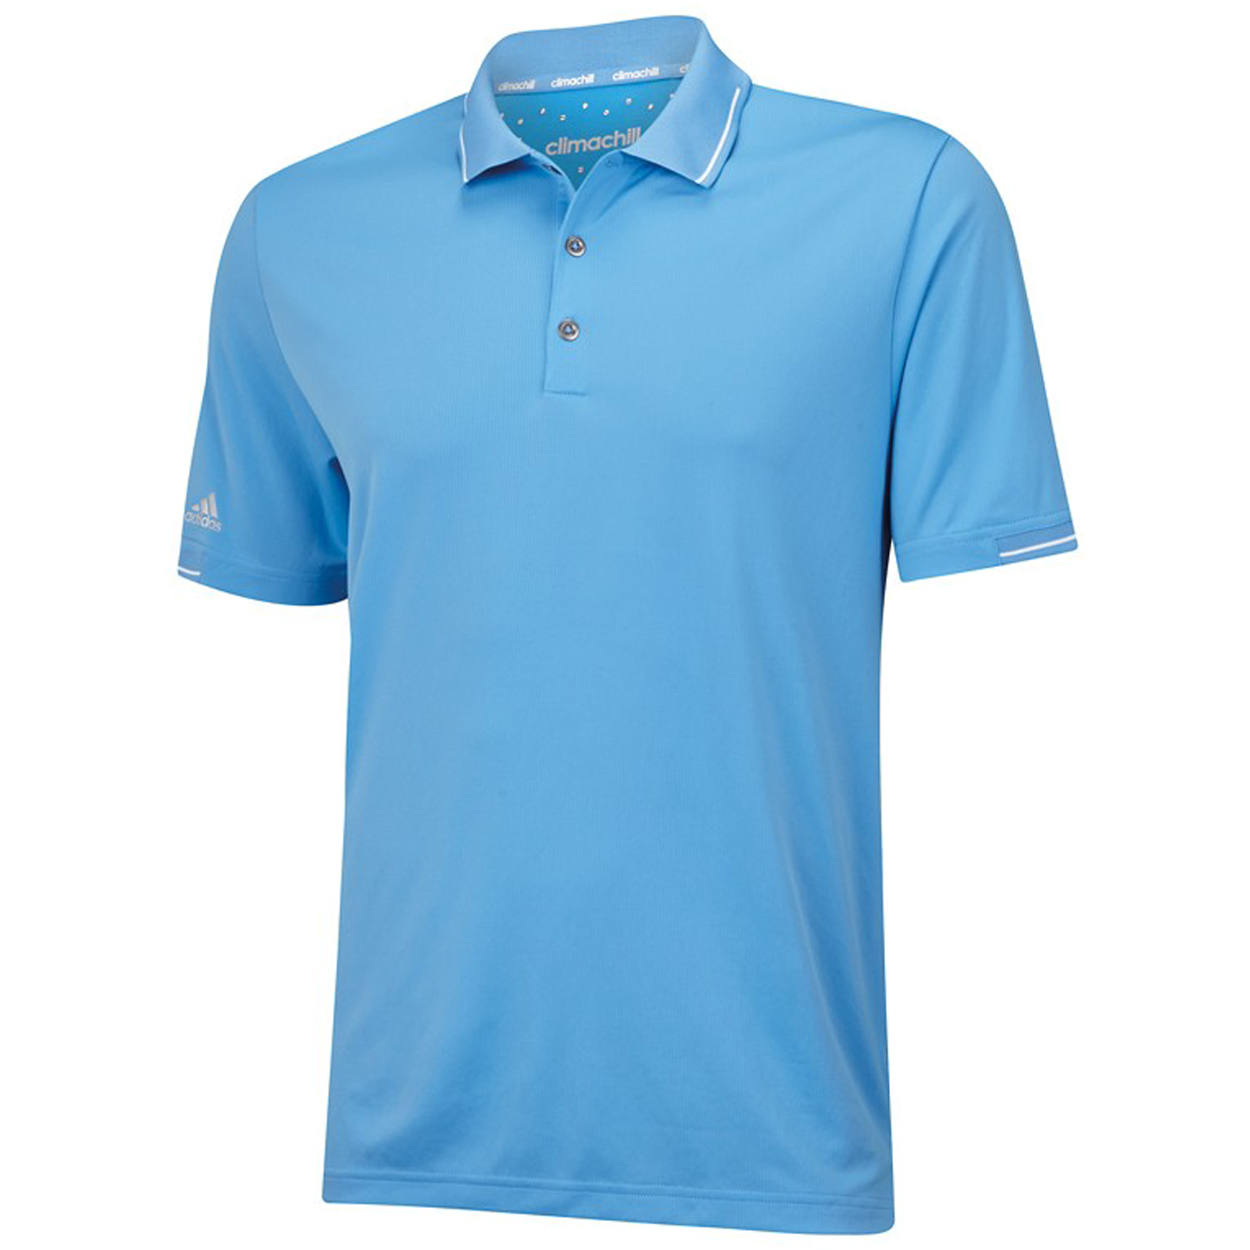 Adidas golf men 39 s climachill solid polo shirt brand new for Polo brand polo shirts